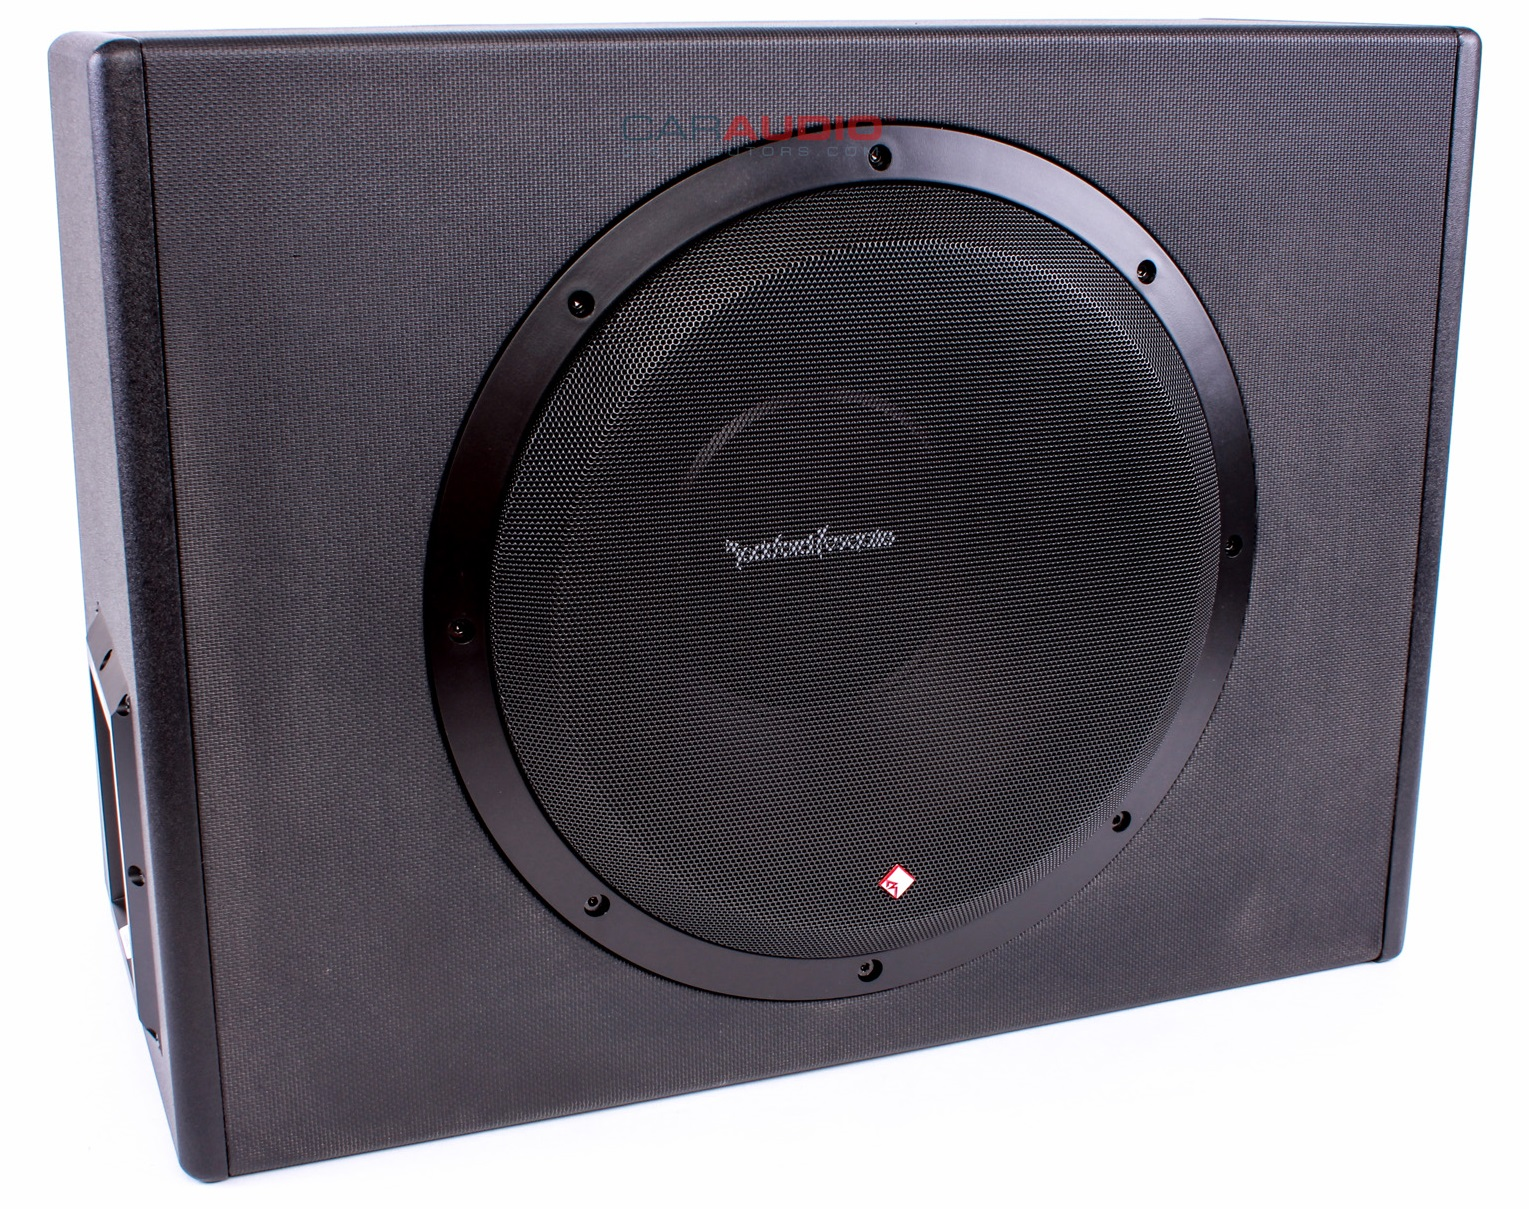 rockford fosgate p300 12 p300 12 single 12 quot 300w rms powered subwoofer 780687340841 ebay